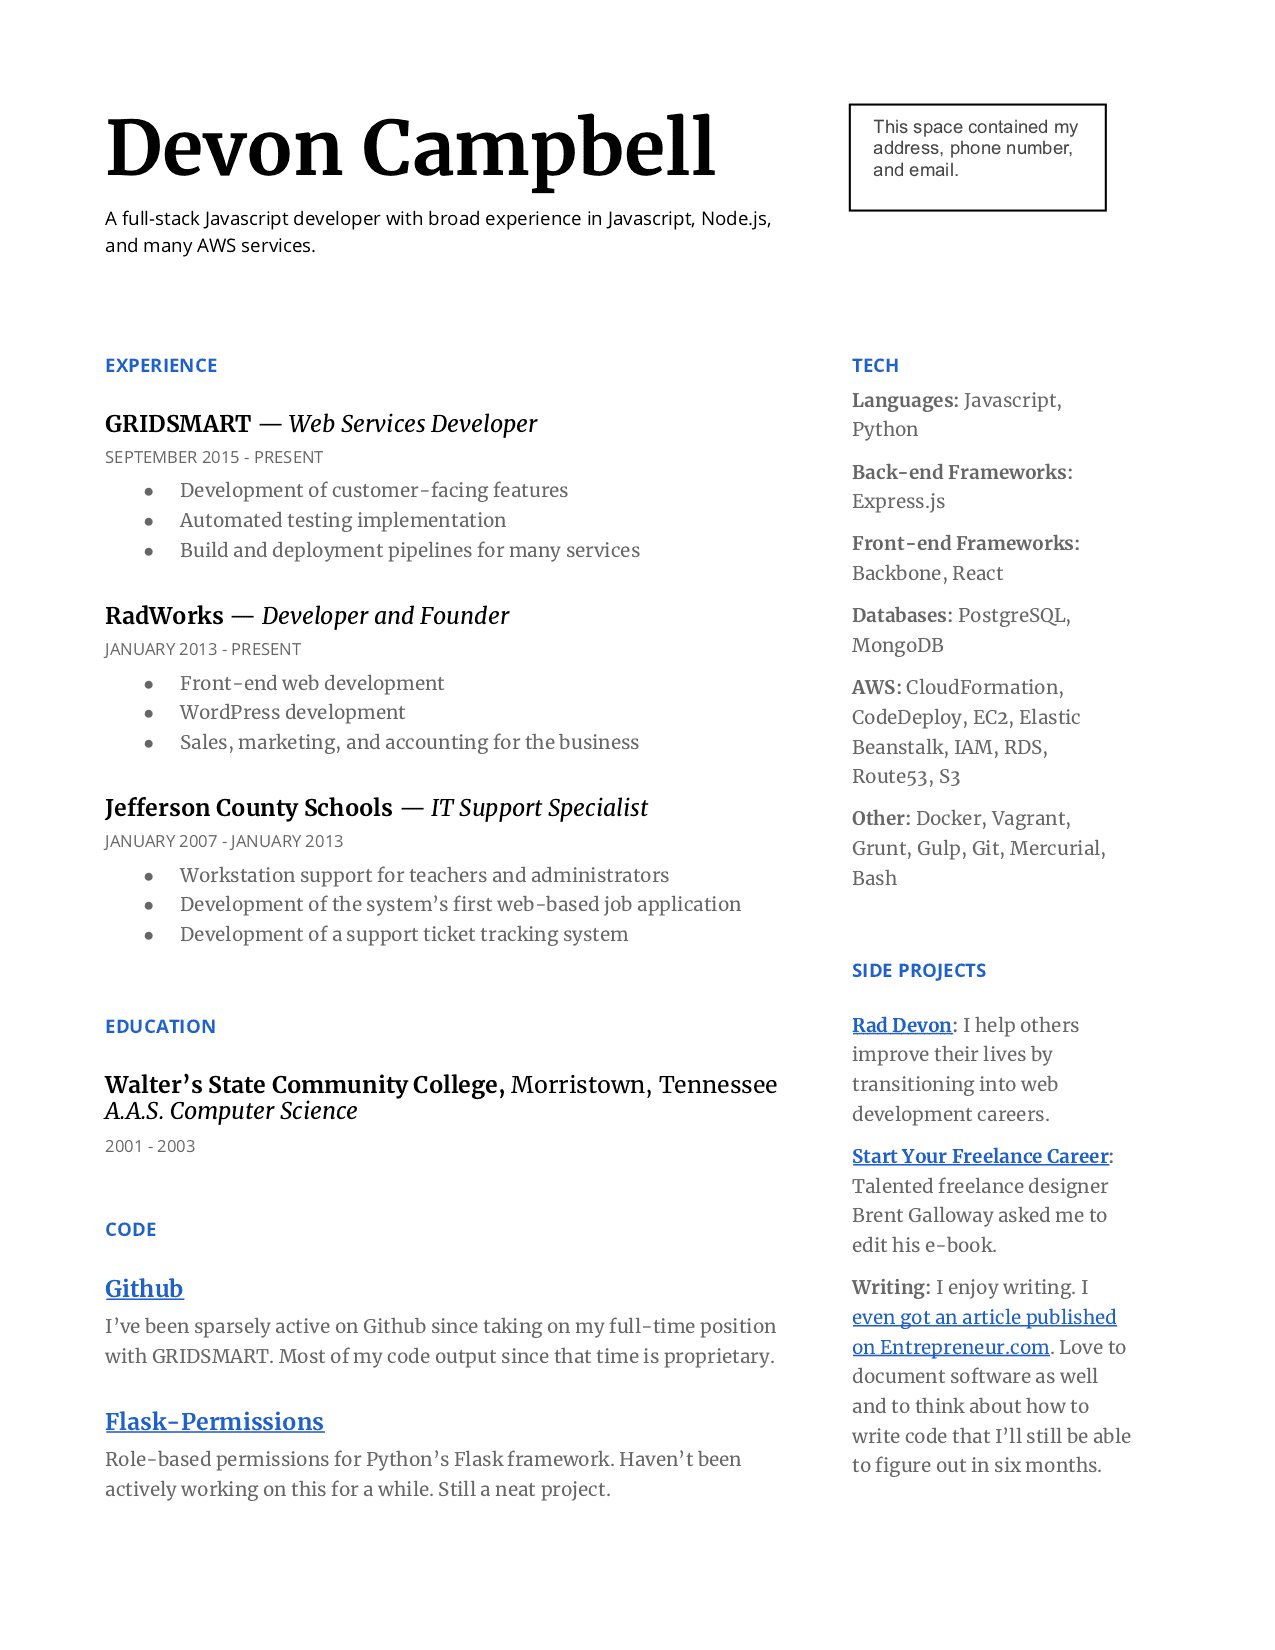 How To Build Your Web Developer Resume Even With No Experience